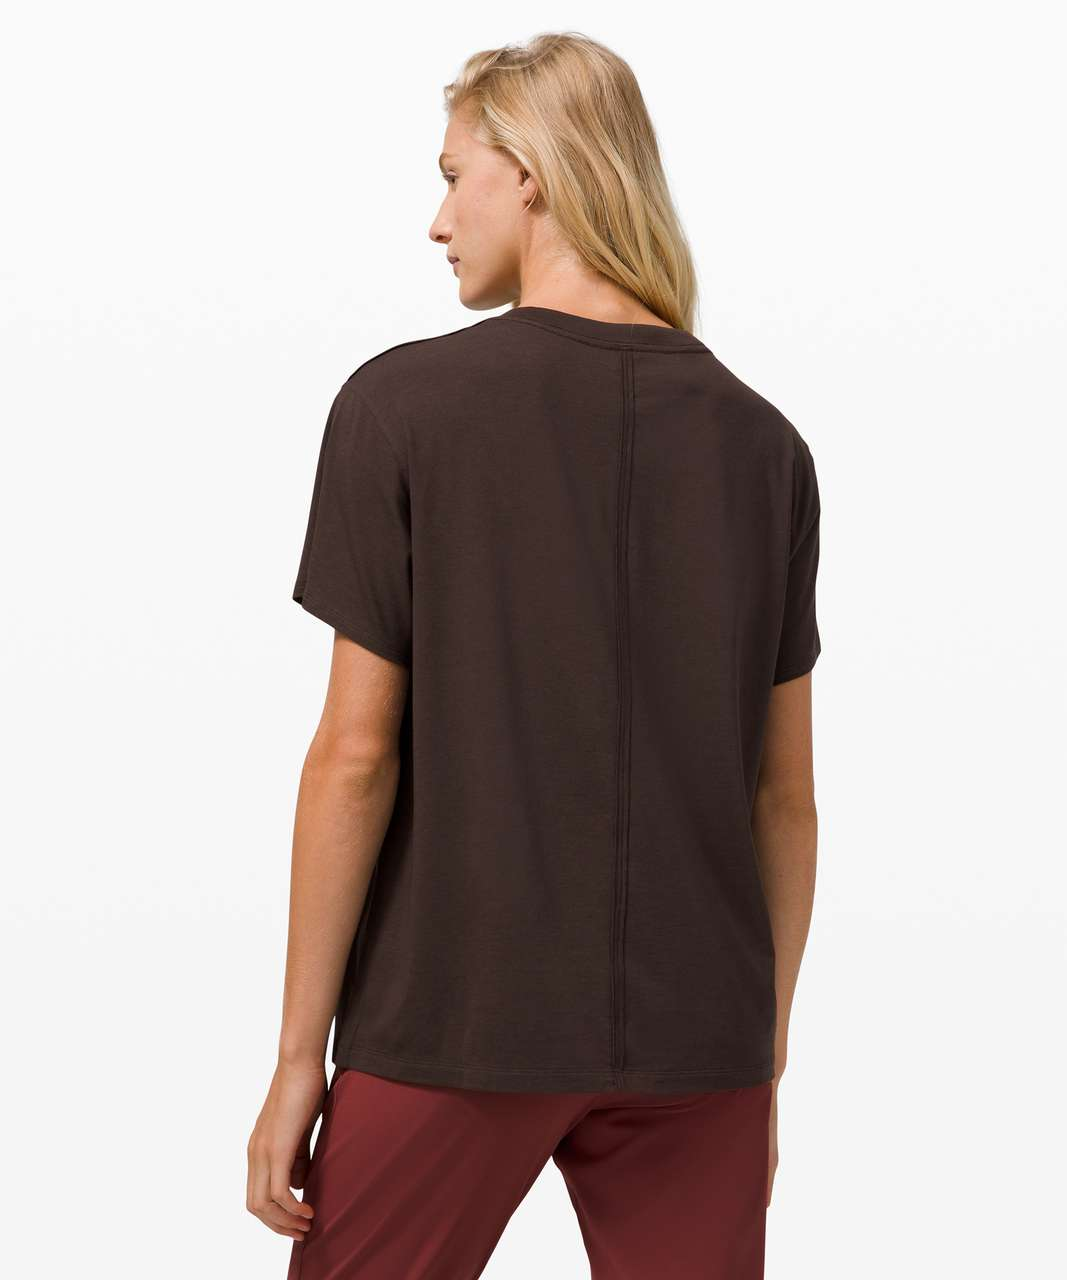 Lululemon All Yours Tee - French Press